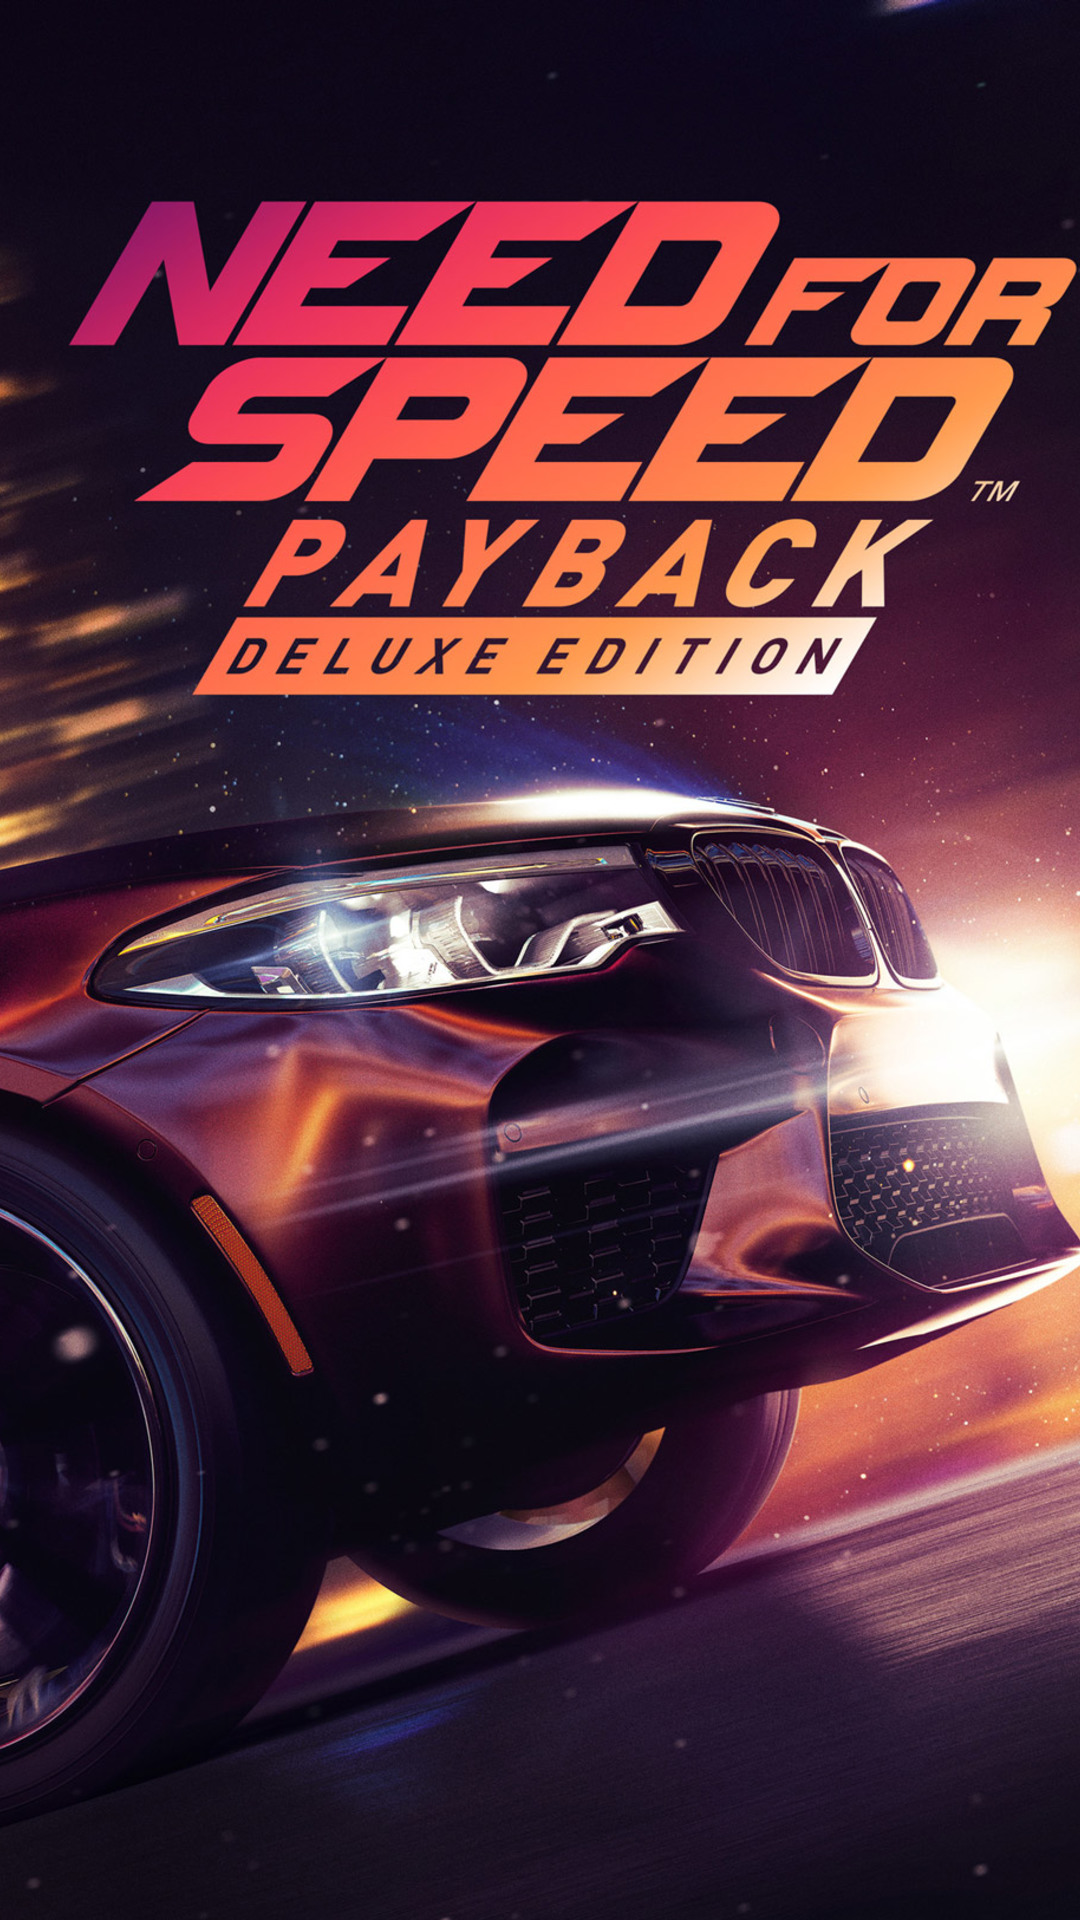 Need For Speed Payback Best Htc One Wallpapers Free And Easy To